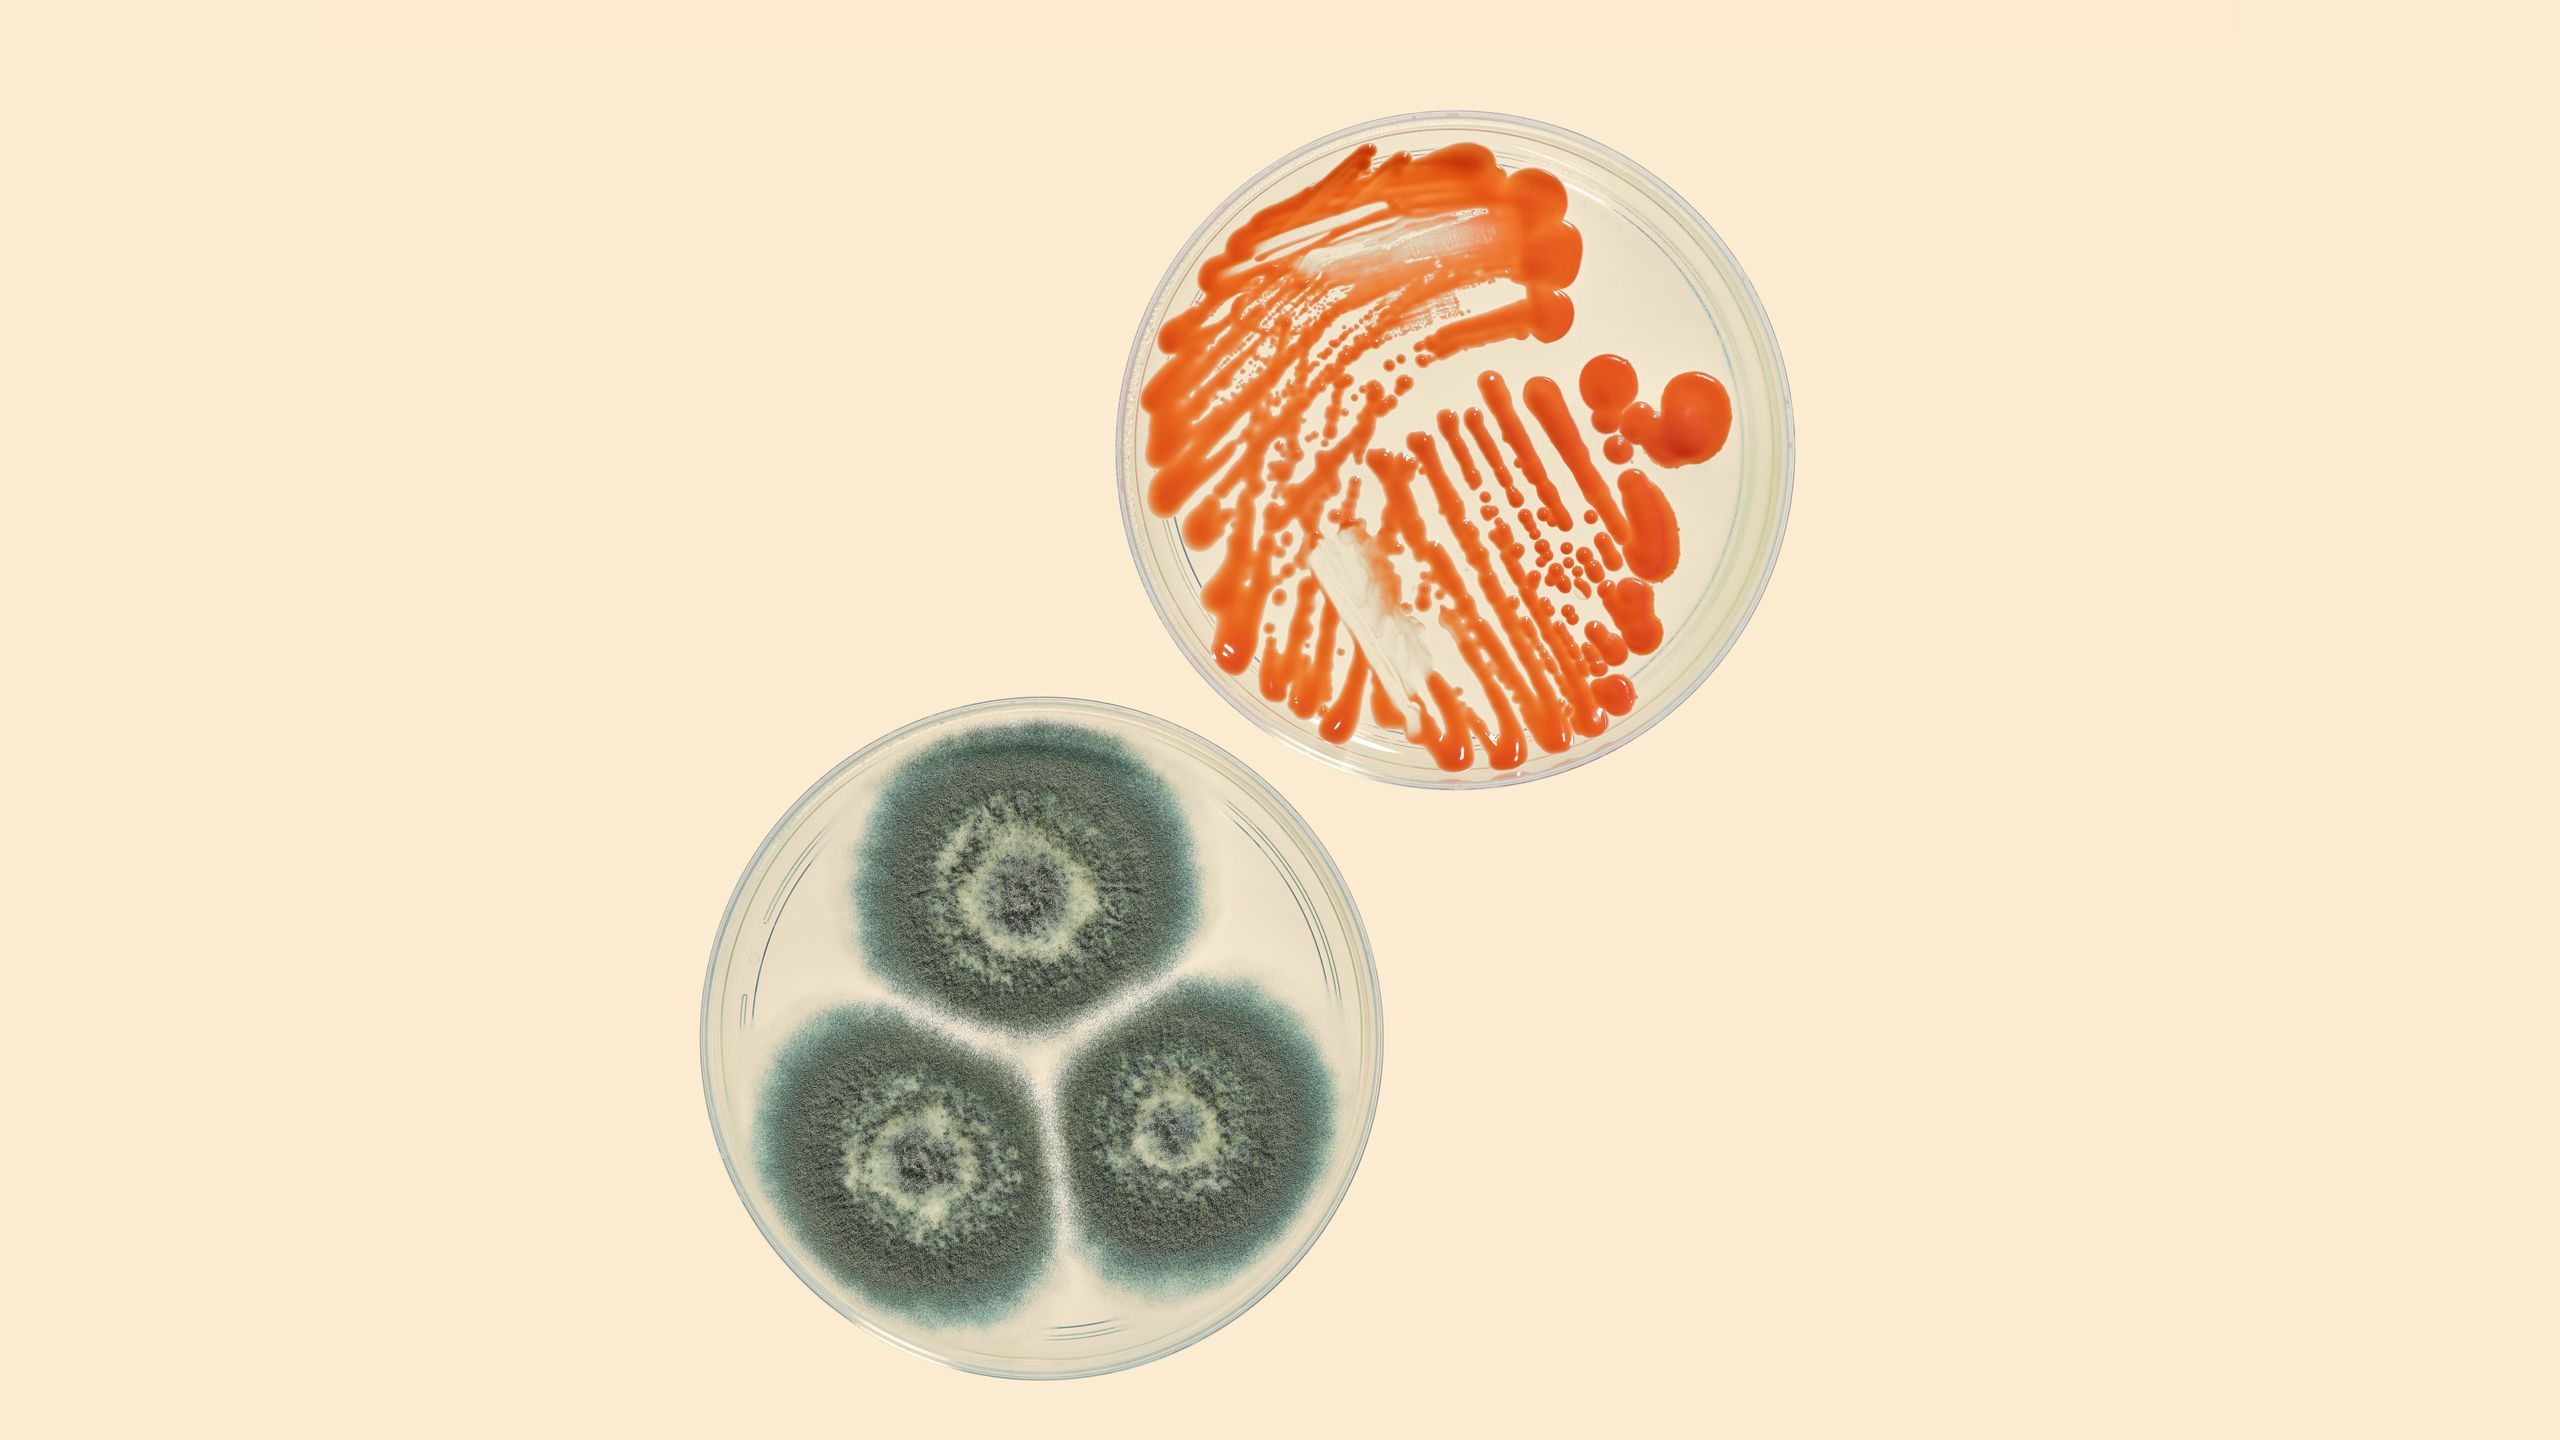 Petri dishes showing the moulds rhodotorula glutinis and aspergillus fumigatus